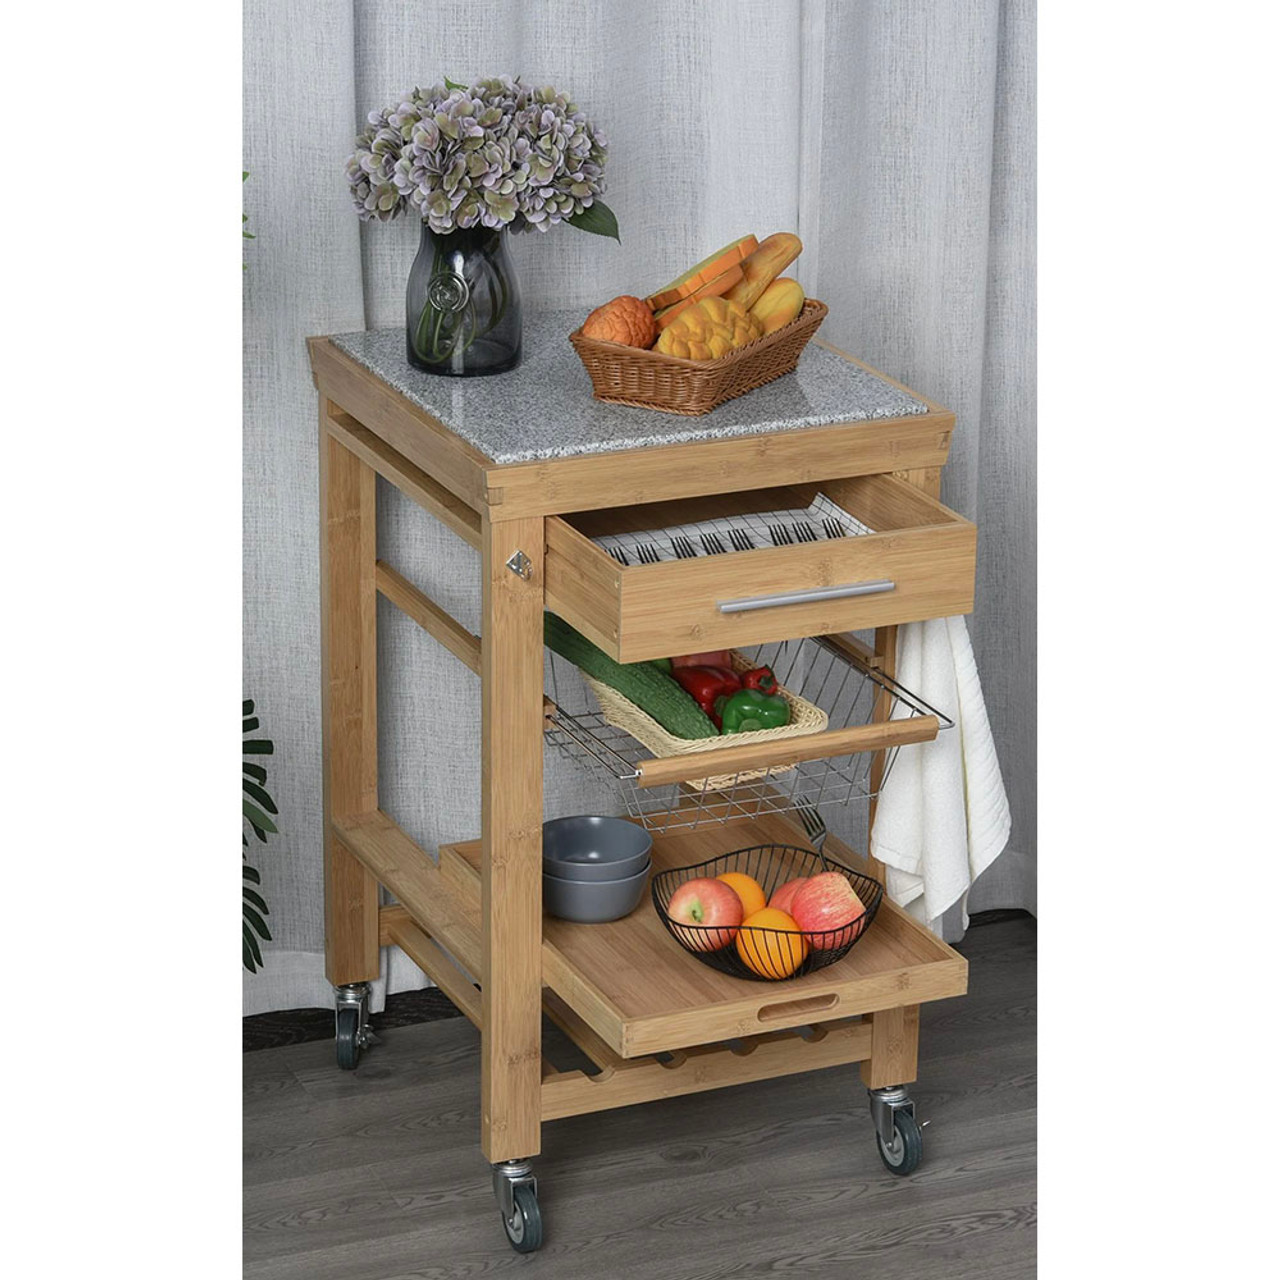 Bamboo Rolling Kitchen Island Storage Cart with Granite Top! 7.99 (REG 4.99) + Free Shipping at Until Gone!